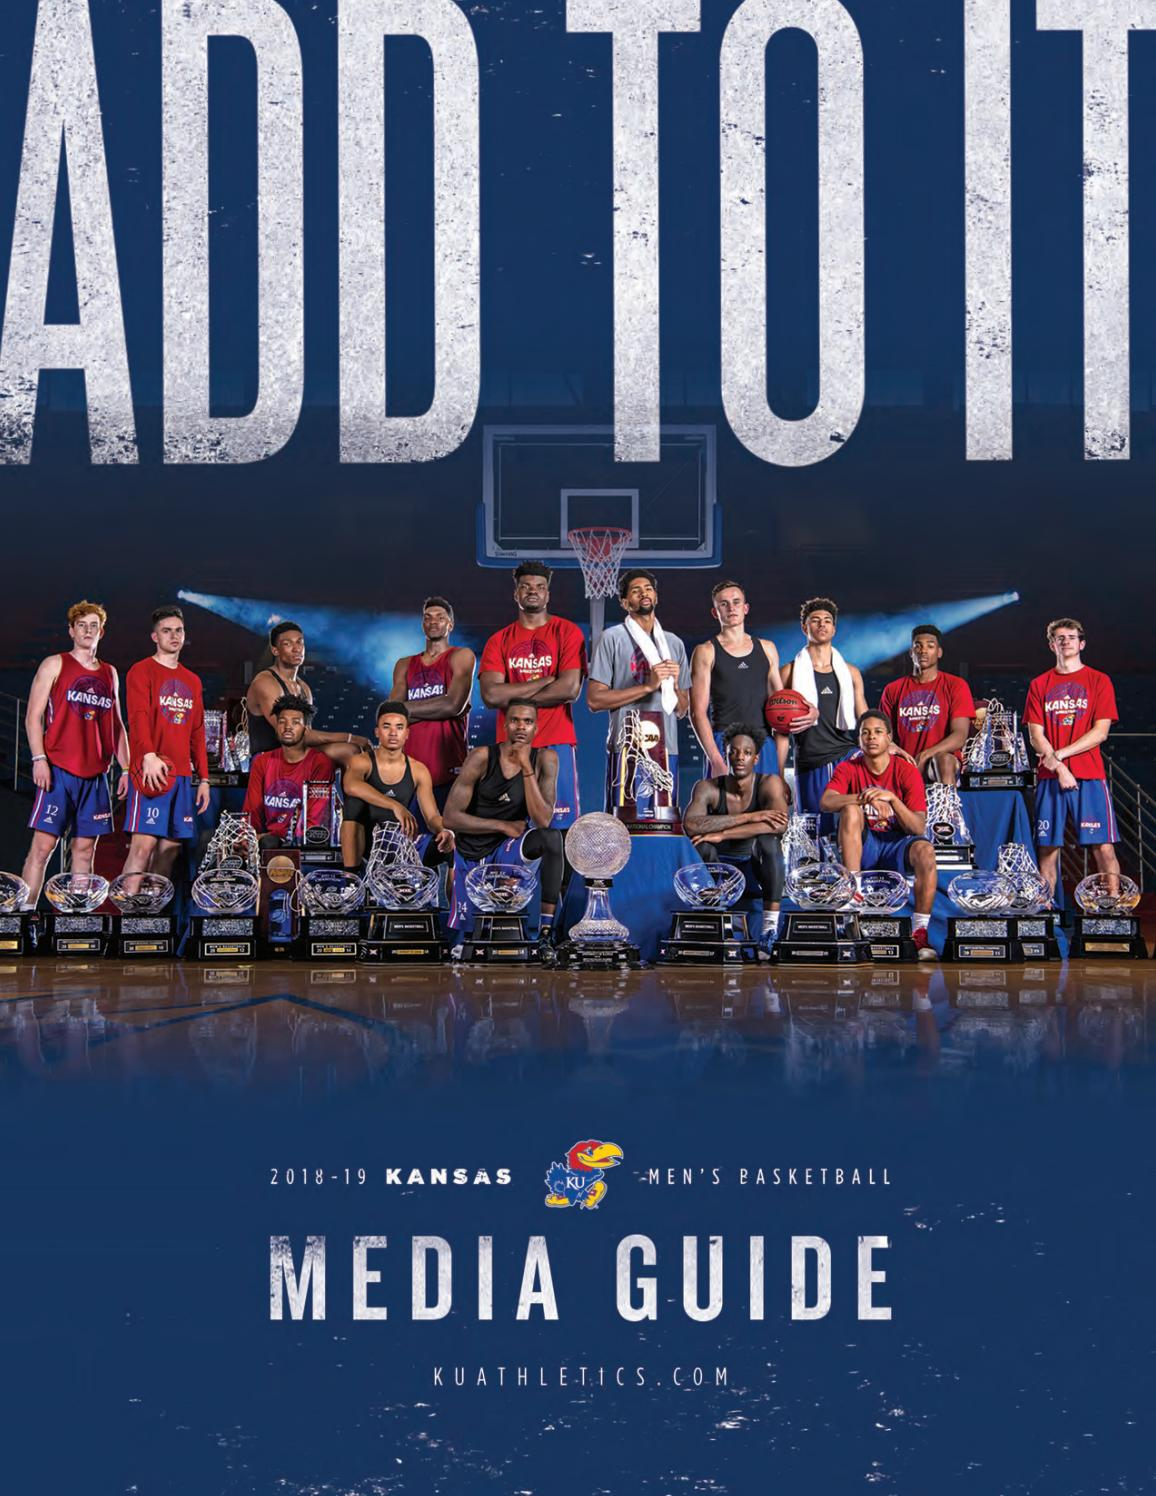 2018-19 Kansas Men's Basketball Media Guide by Kansas